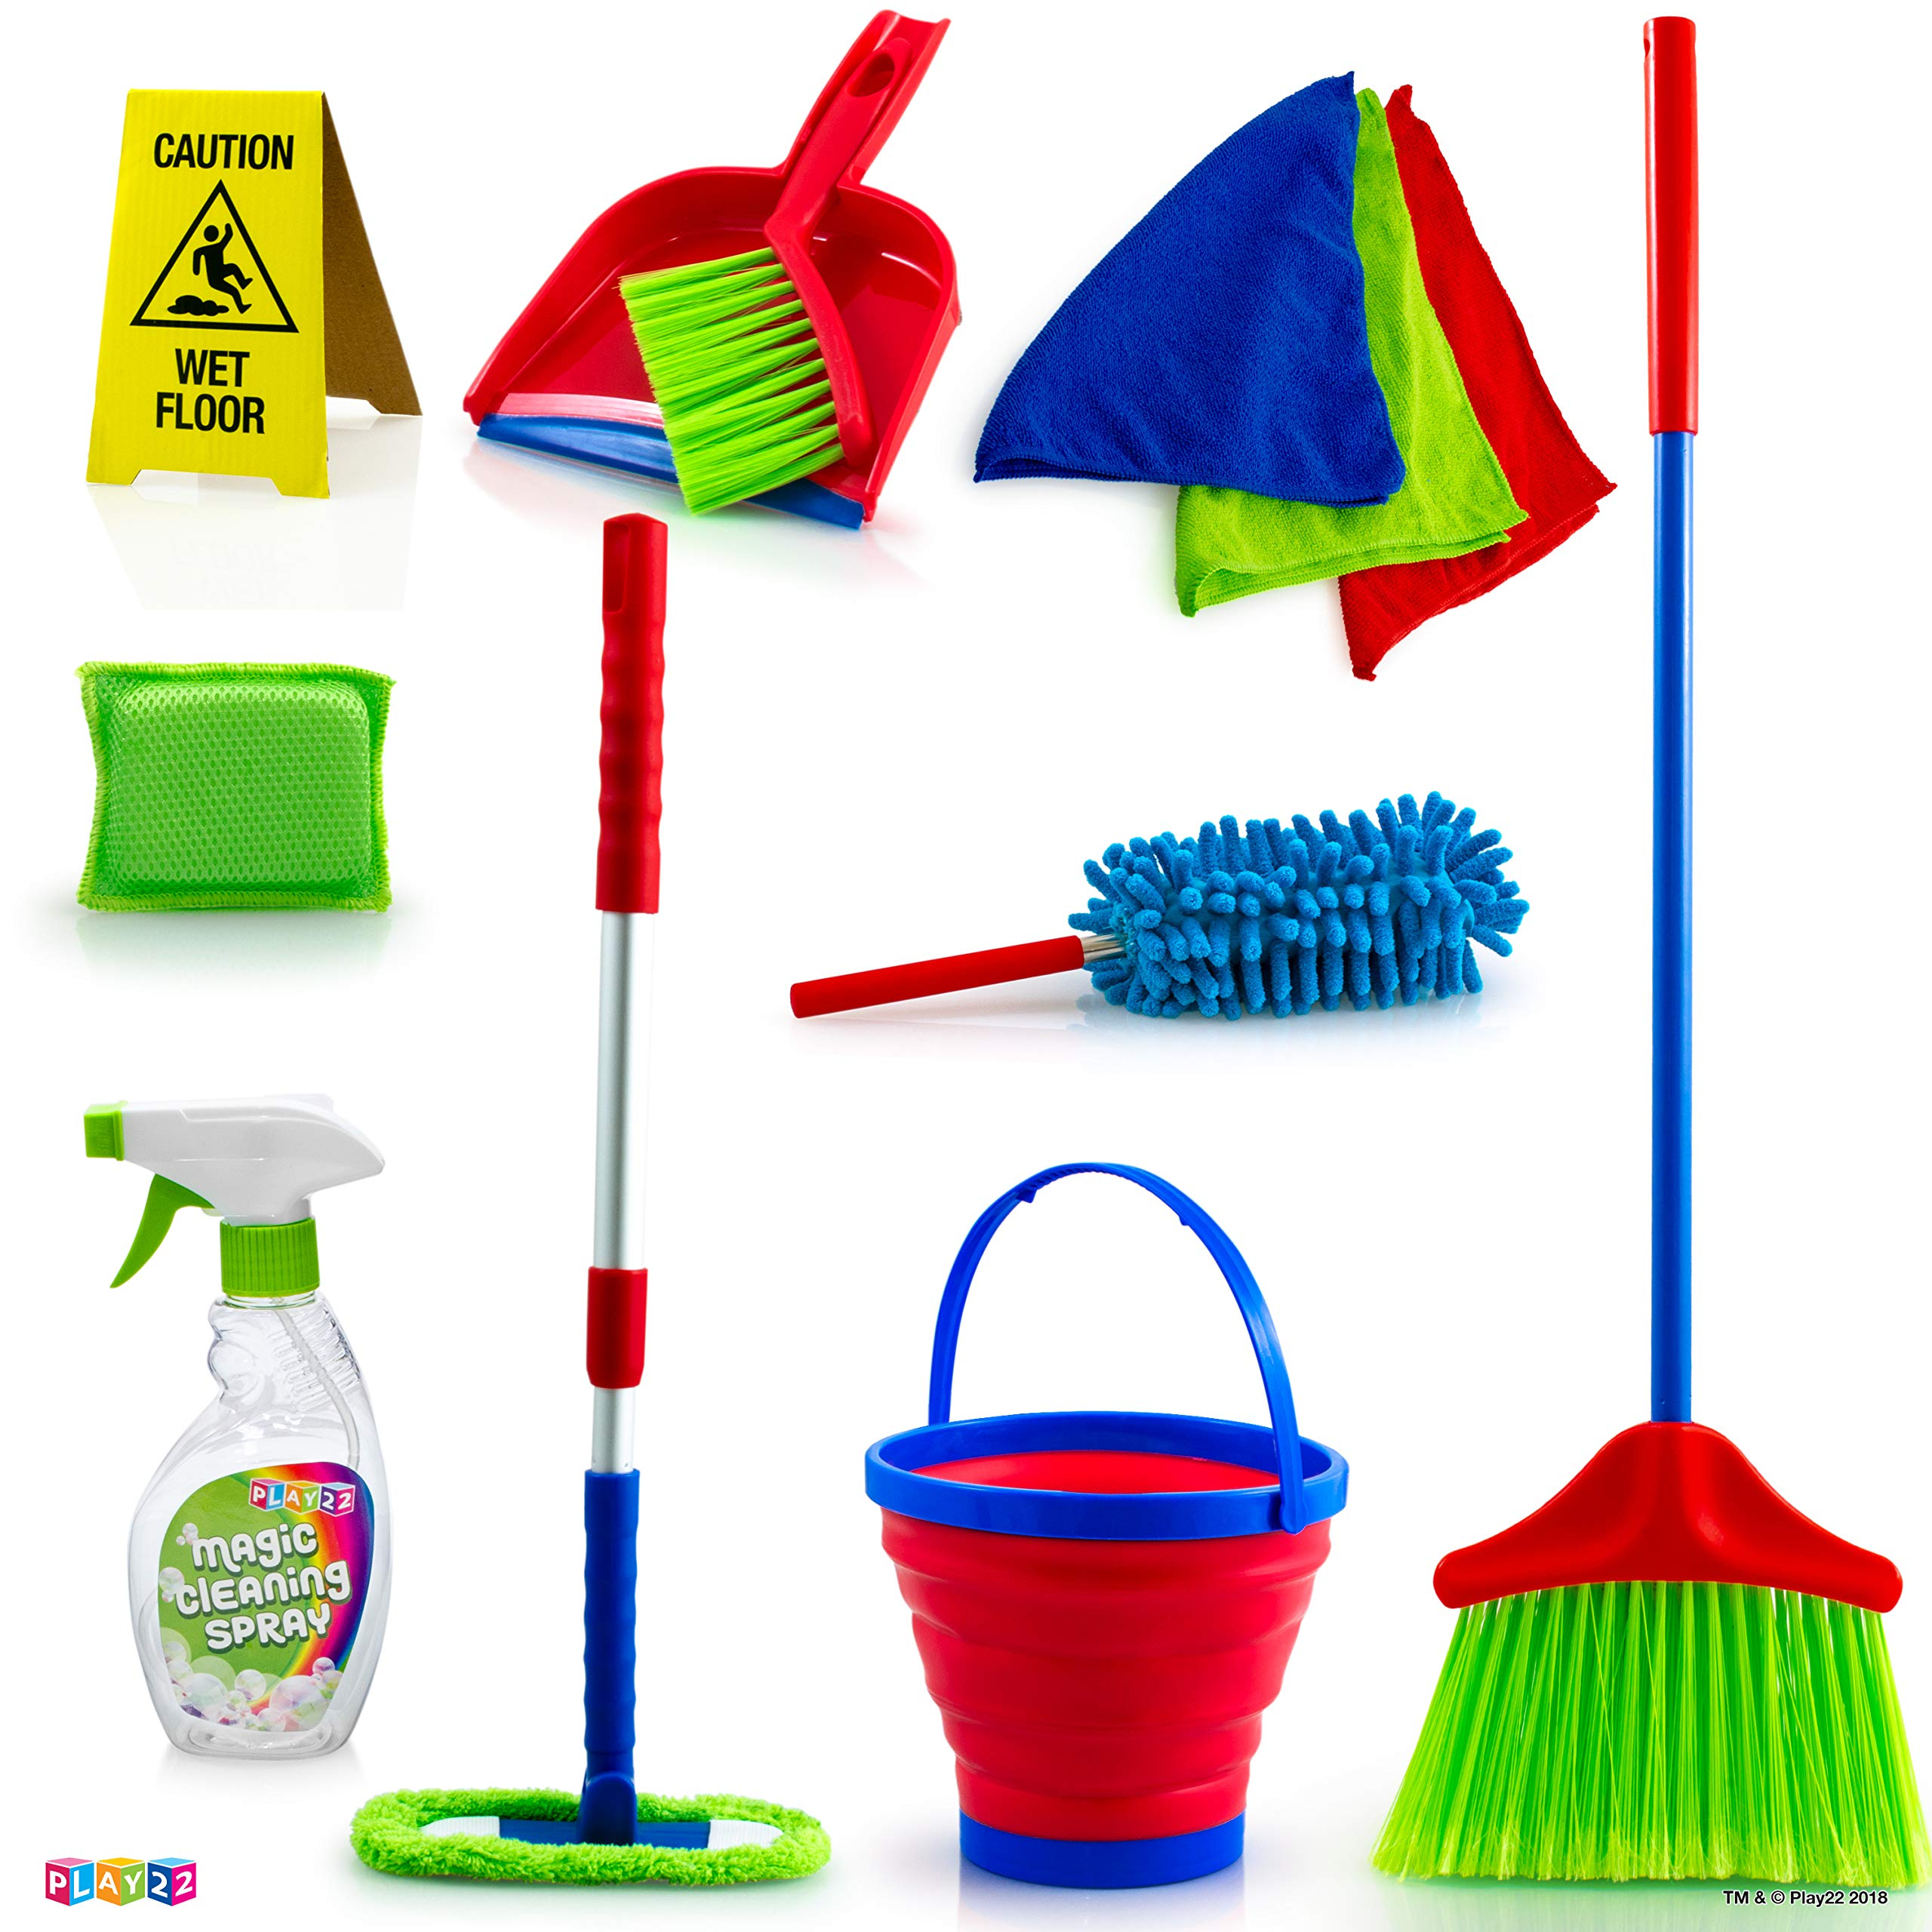 Play22 Kids Cleaning Set 12 Piece - Toy Cleaning Set Includes Broom, Mop, Brush, Dust Pan, Duster, Sponge, Clothes, Spray, Bucket, Caution Sign, - Toy Kitchen Toddler Cleaning Set - Original by Play22